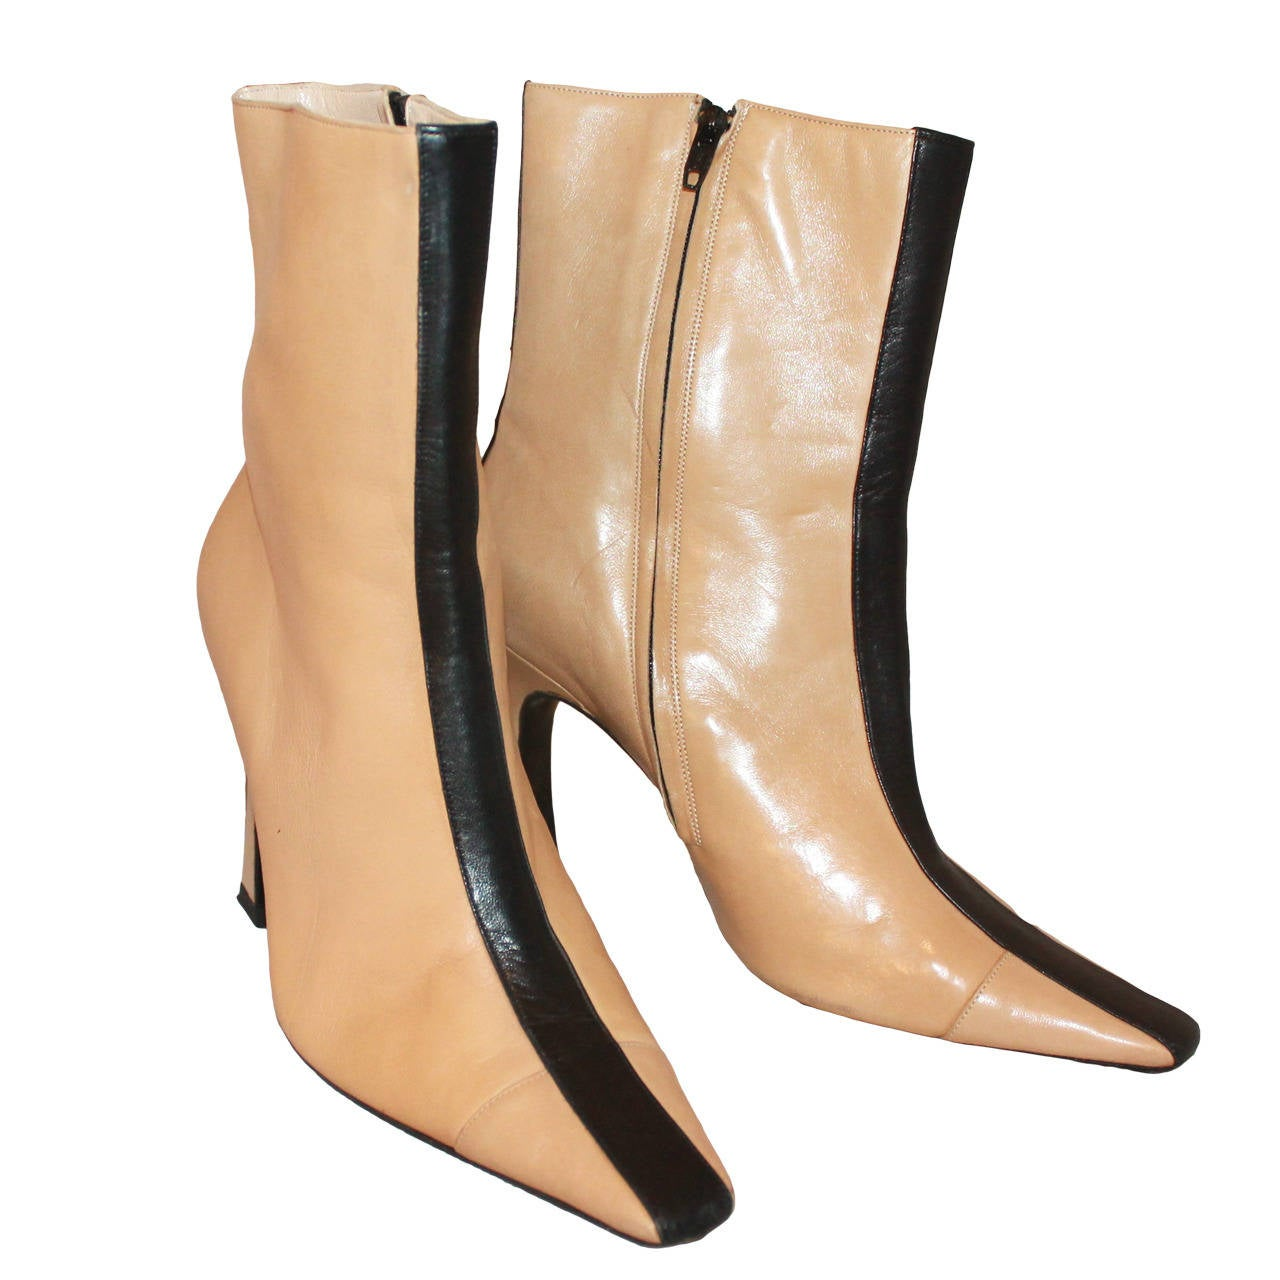 Chanel Tan Leather Booties With Black Stripe 36 5 At 1stdibs